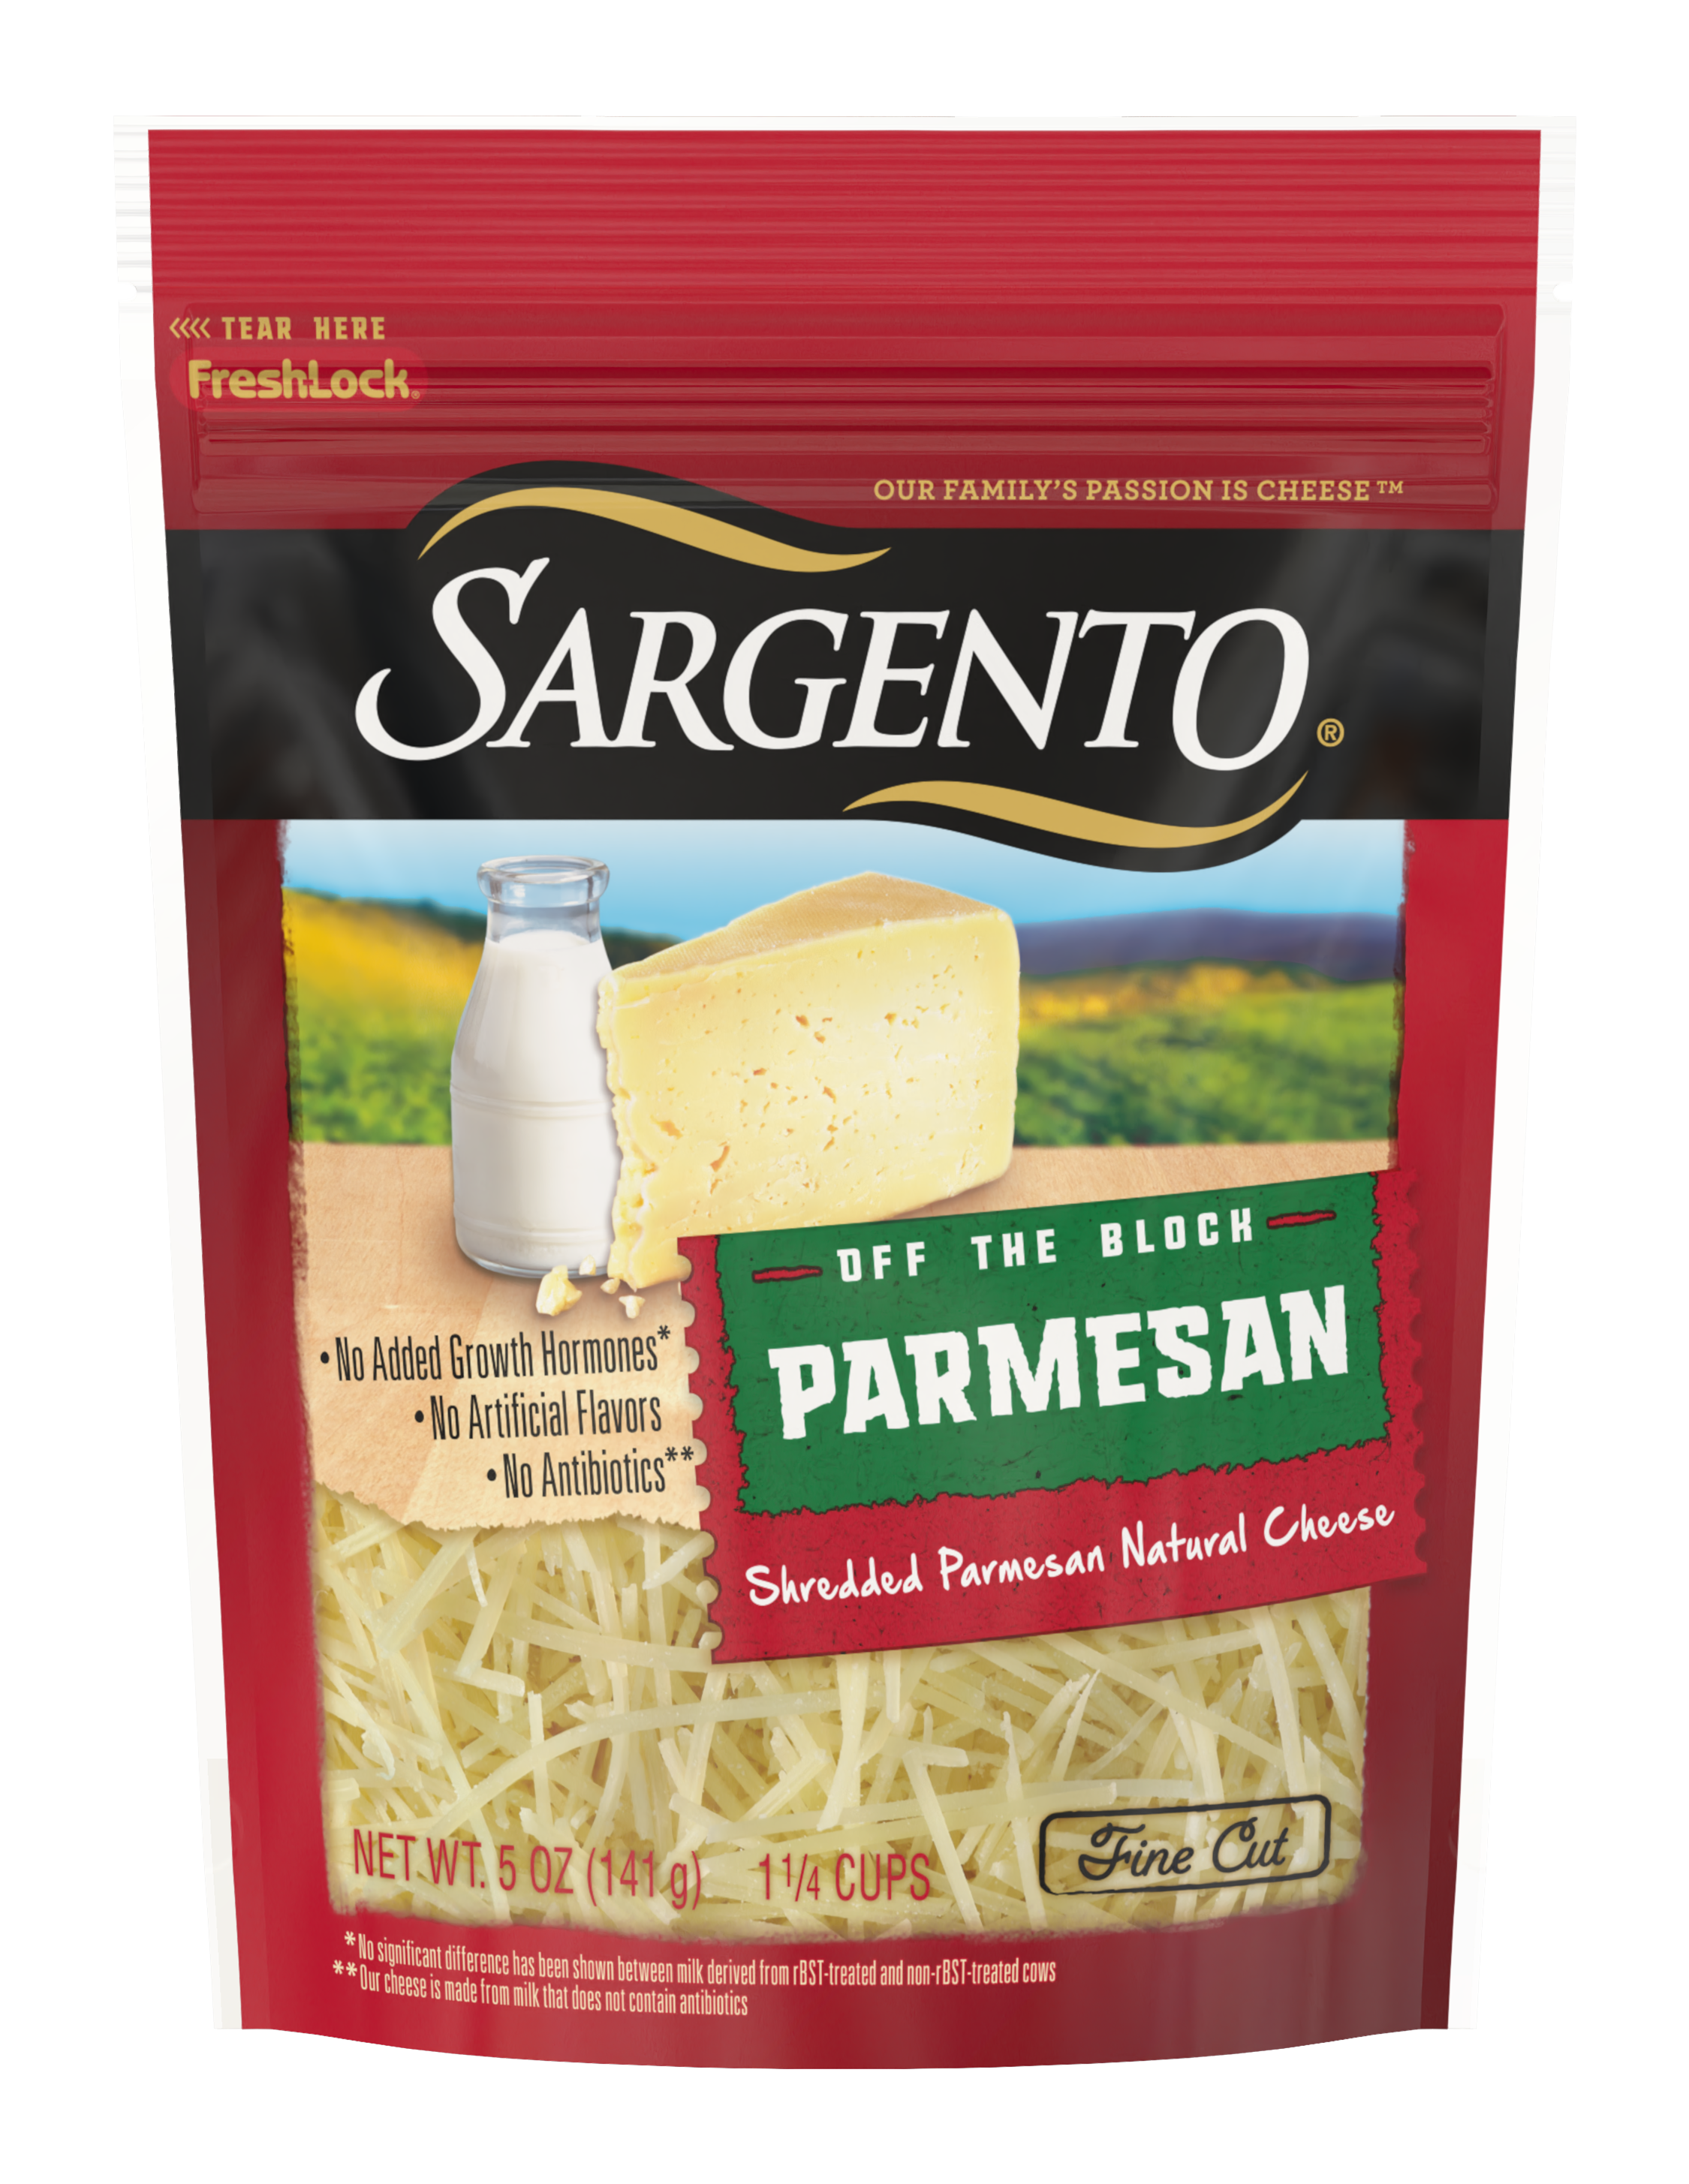 Sargento® Shredded Parmesan Natural Cheese